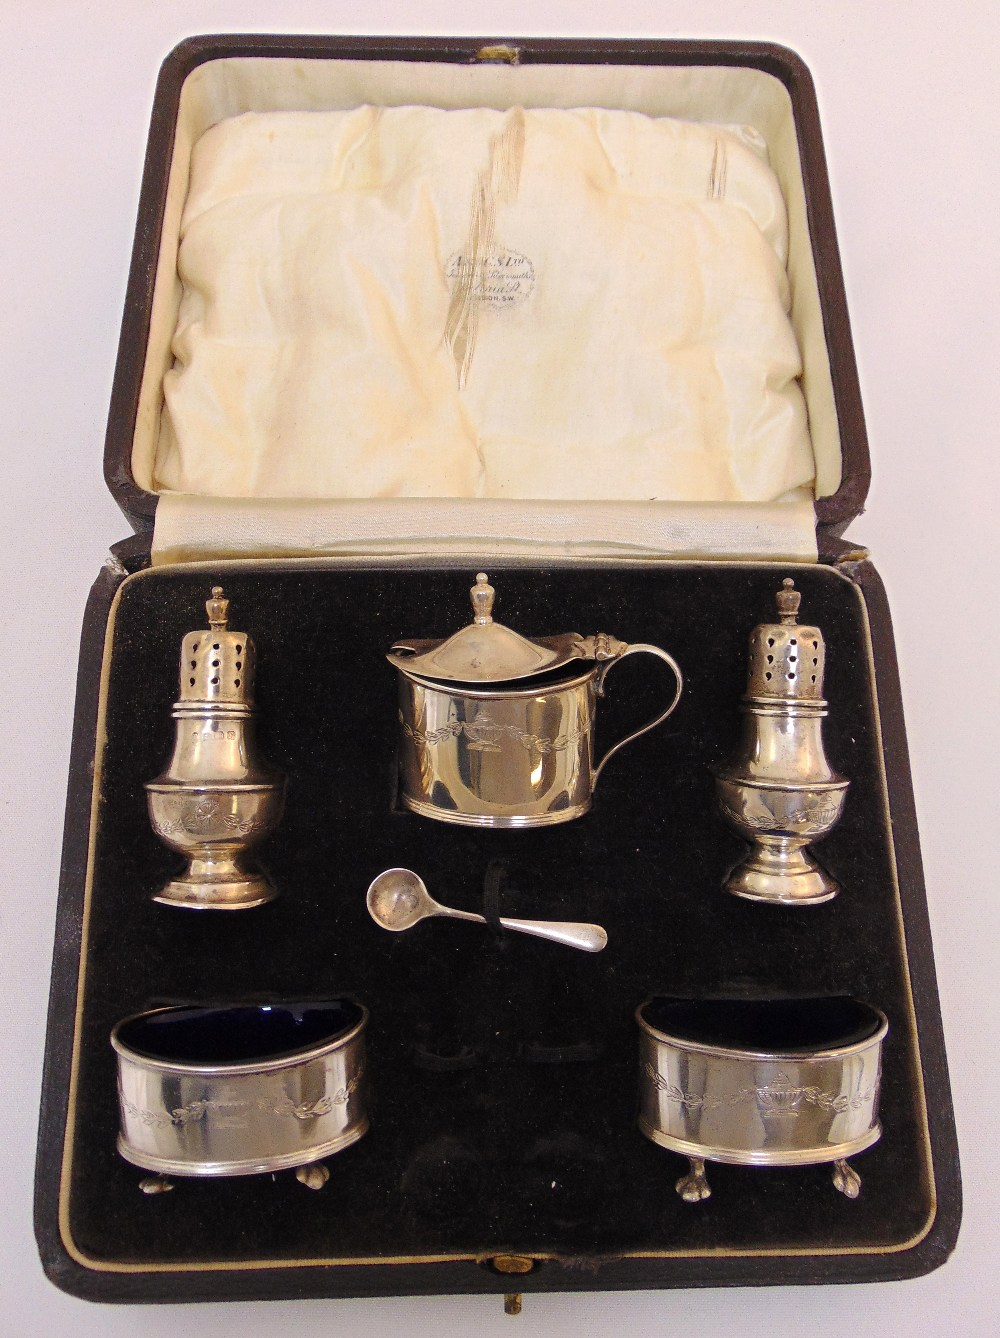 A cased set of silver condiments to include a pair of pepperettes, a pair of salts, a mustard pot